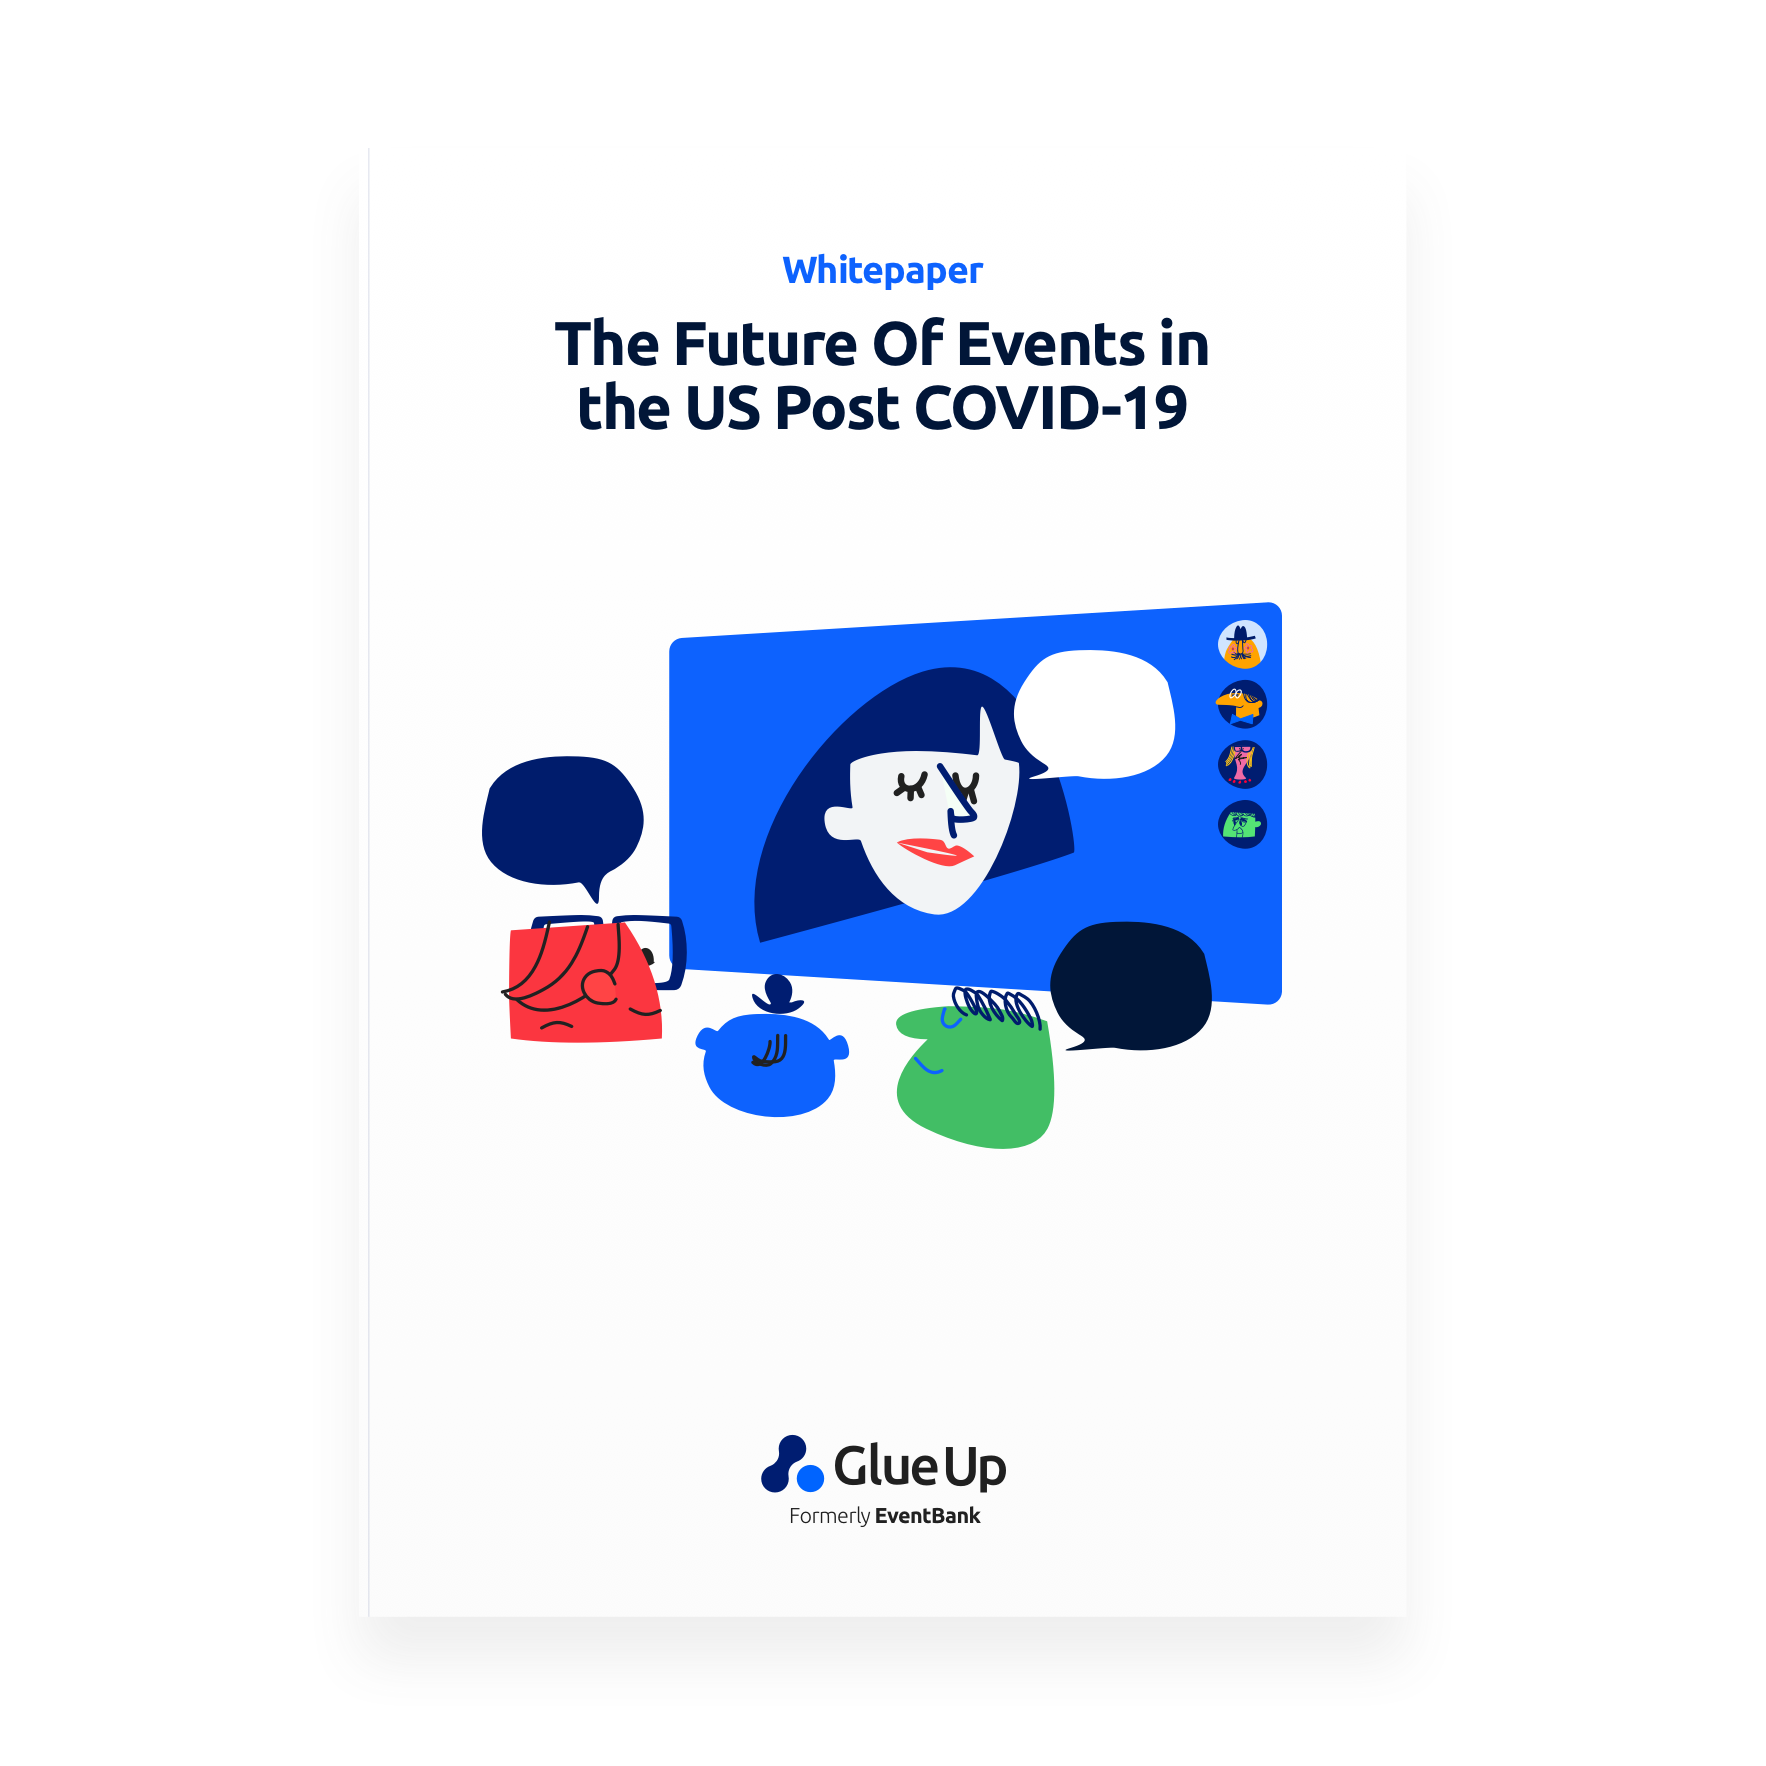 The Future Of Events in the US Post COVID-19